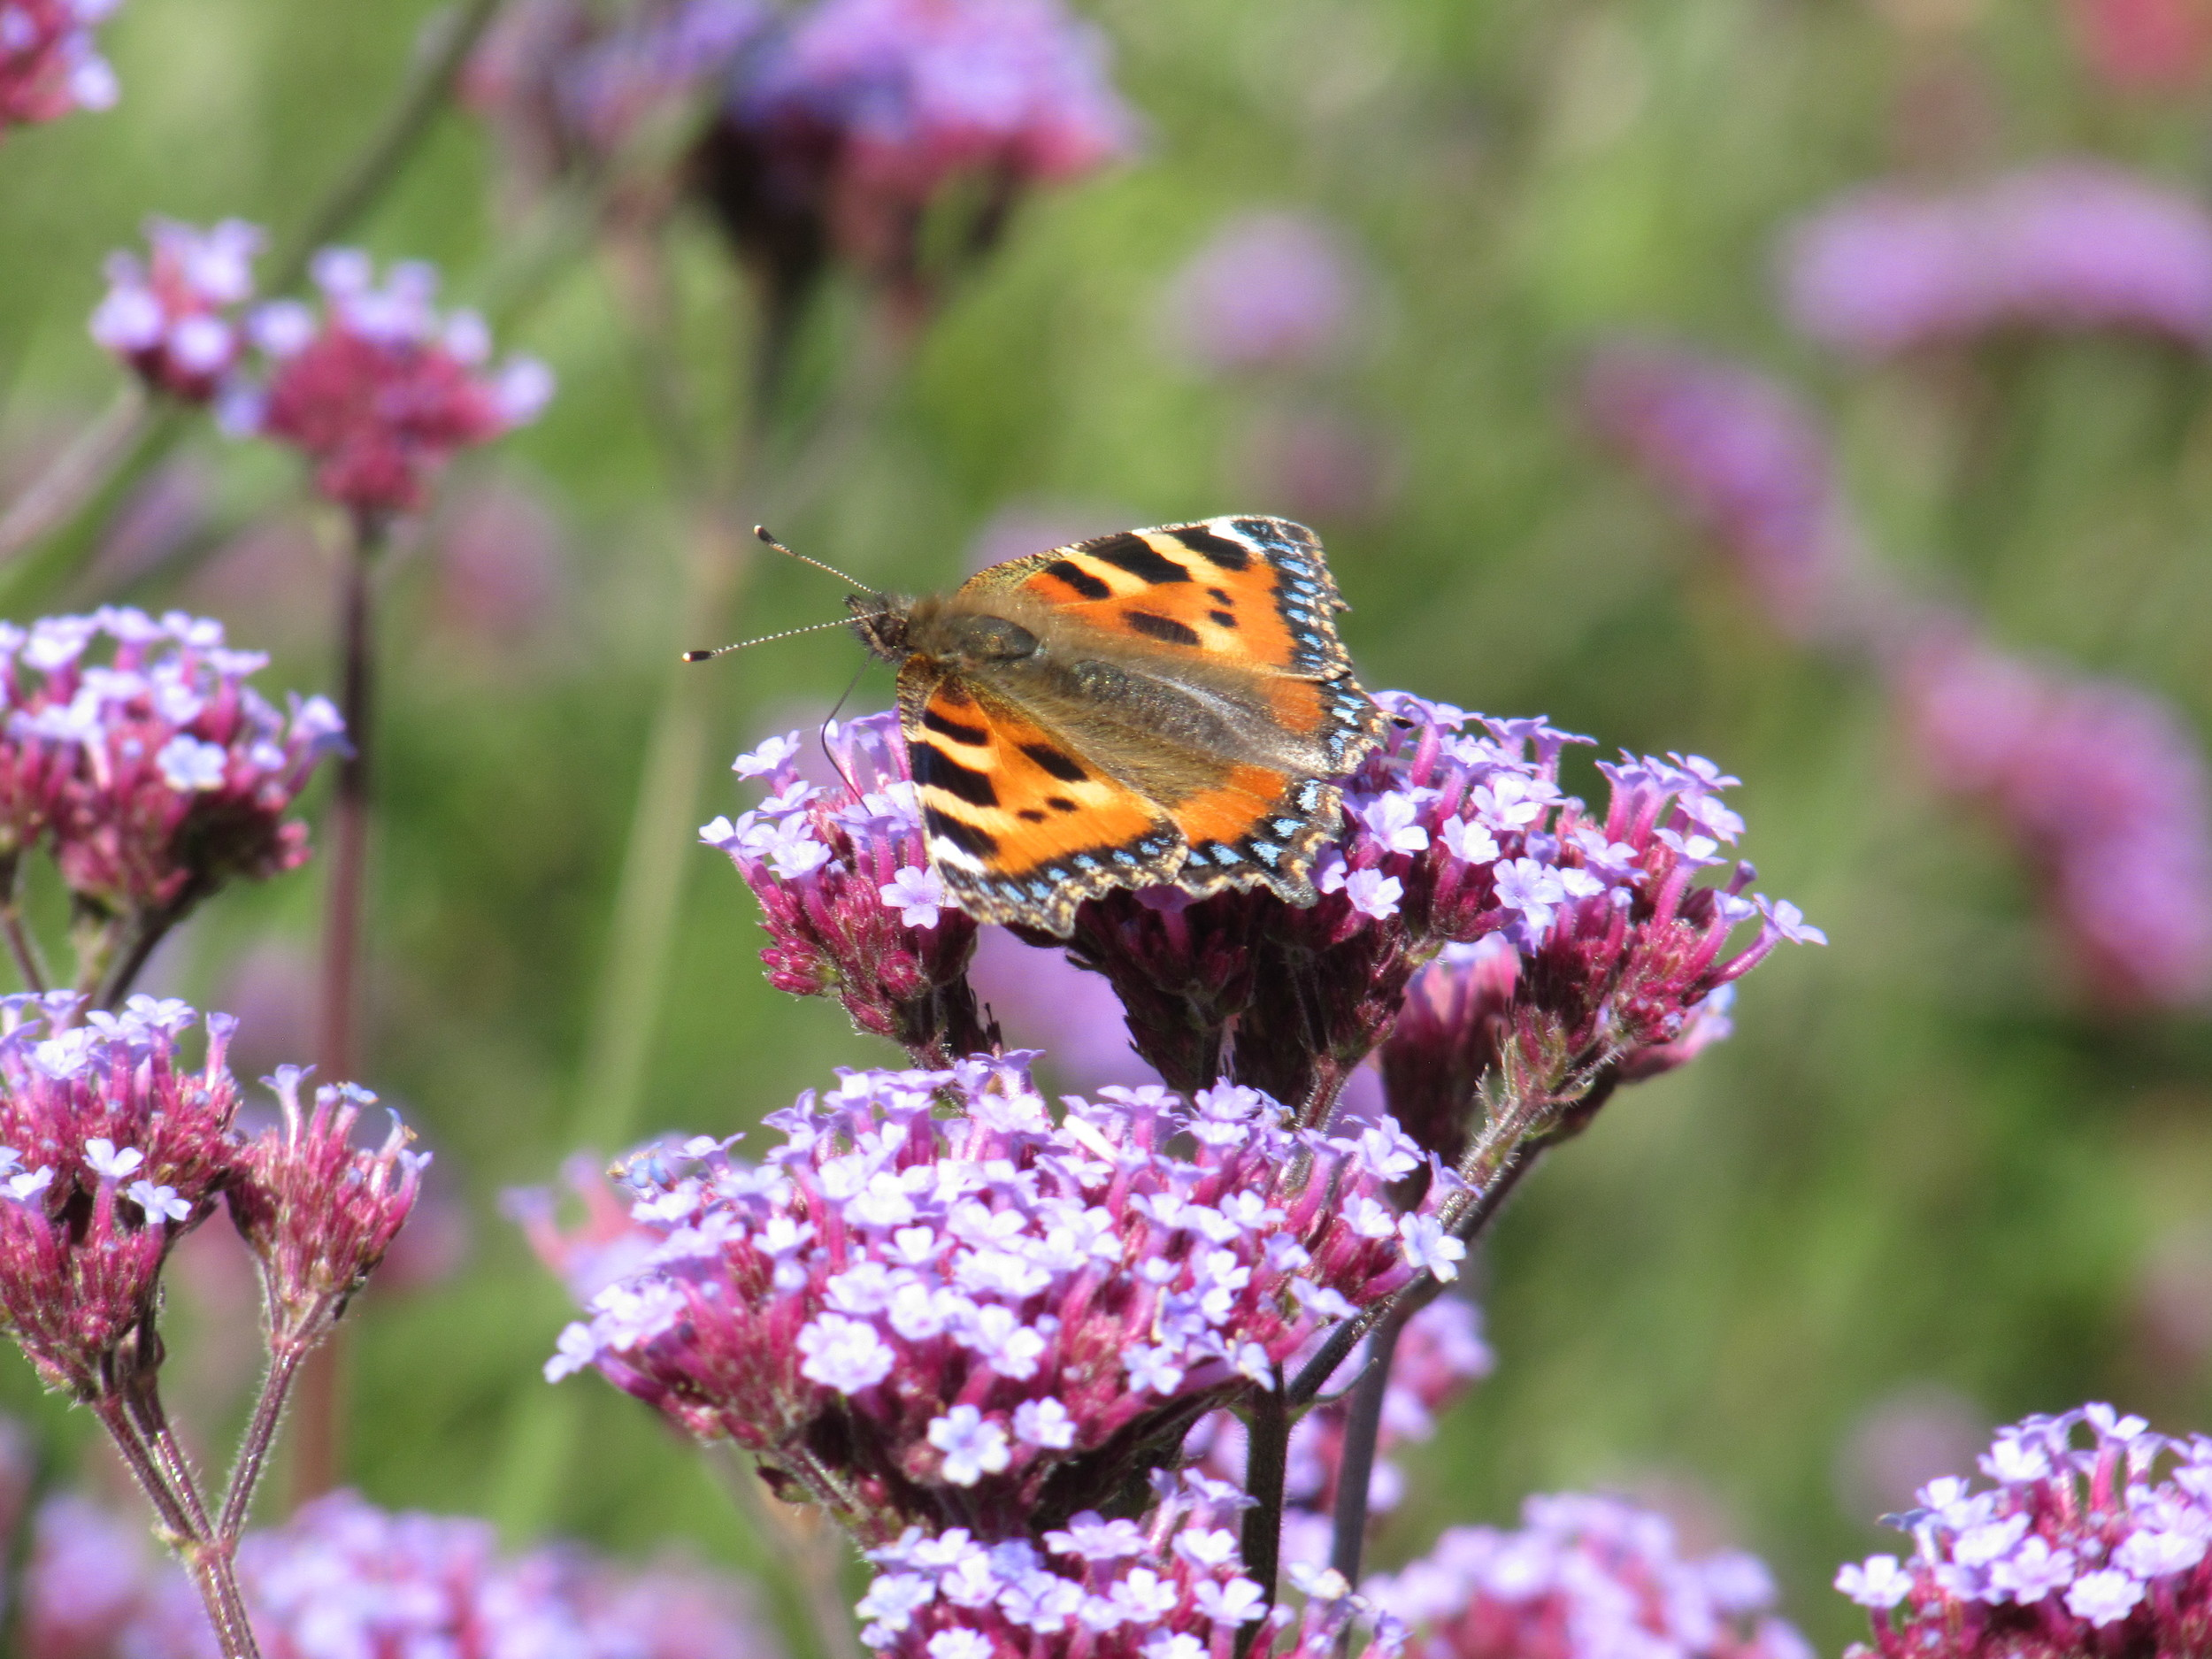 Verbena bonariensis with a small tortoiseshell butterfly taking a drink. An excellent pollinator plant.